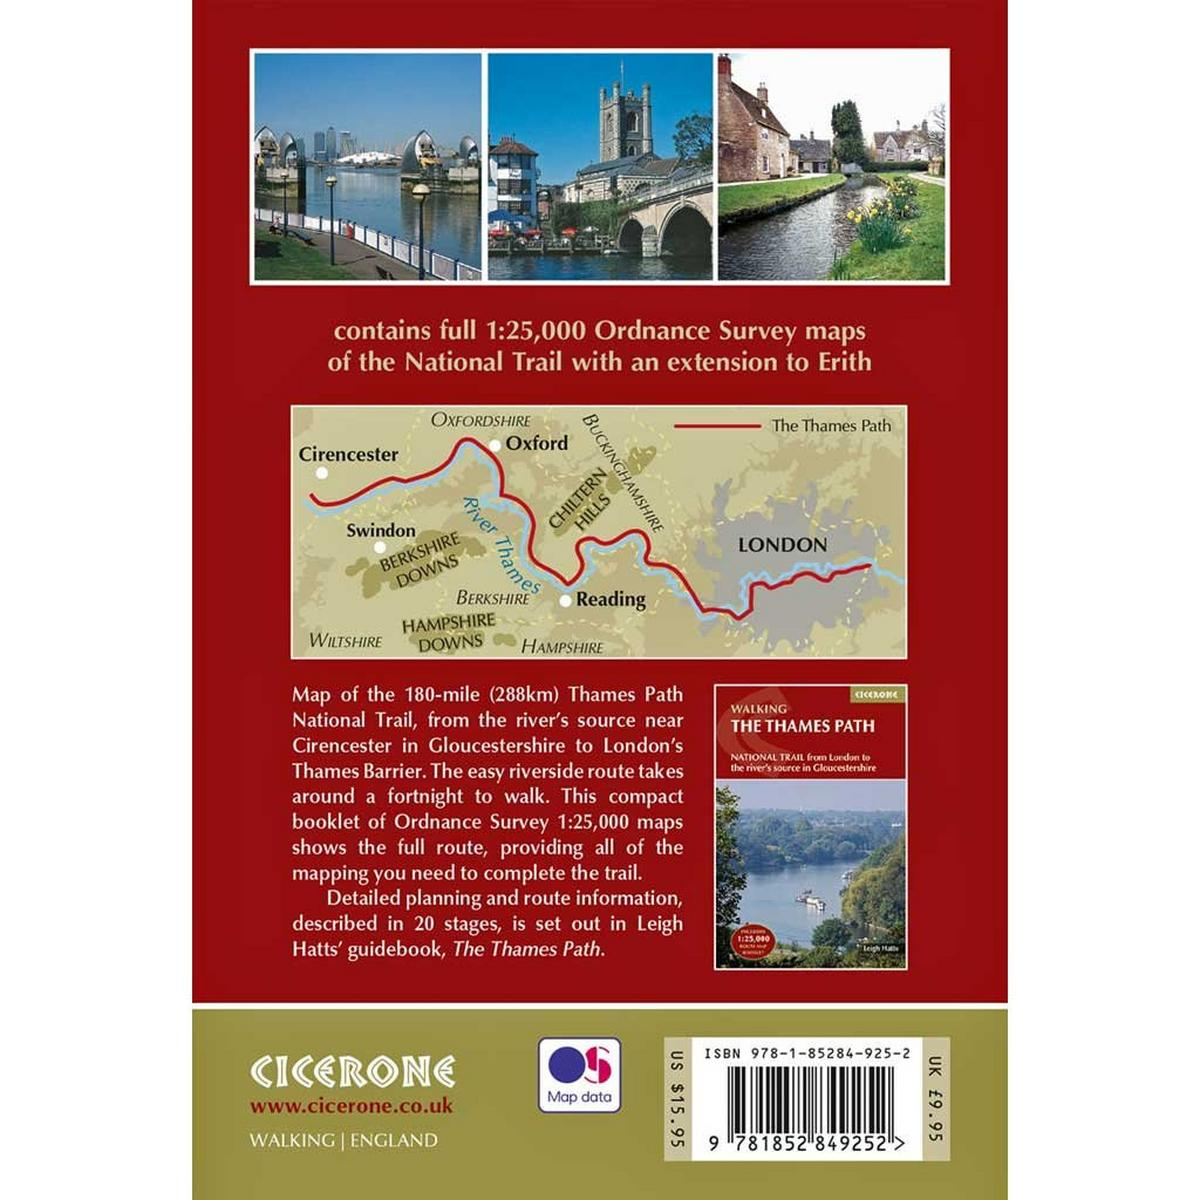 Cicerone Walking Guide Book: The Thames Path (incl. map booklet)